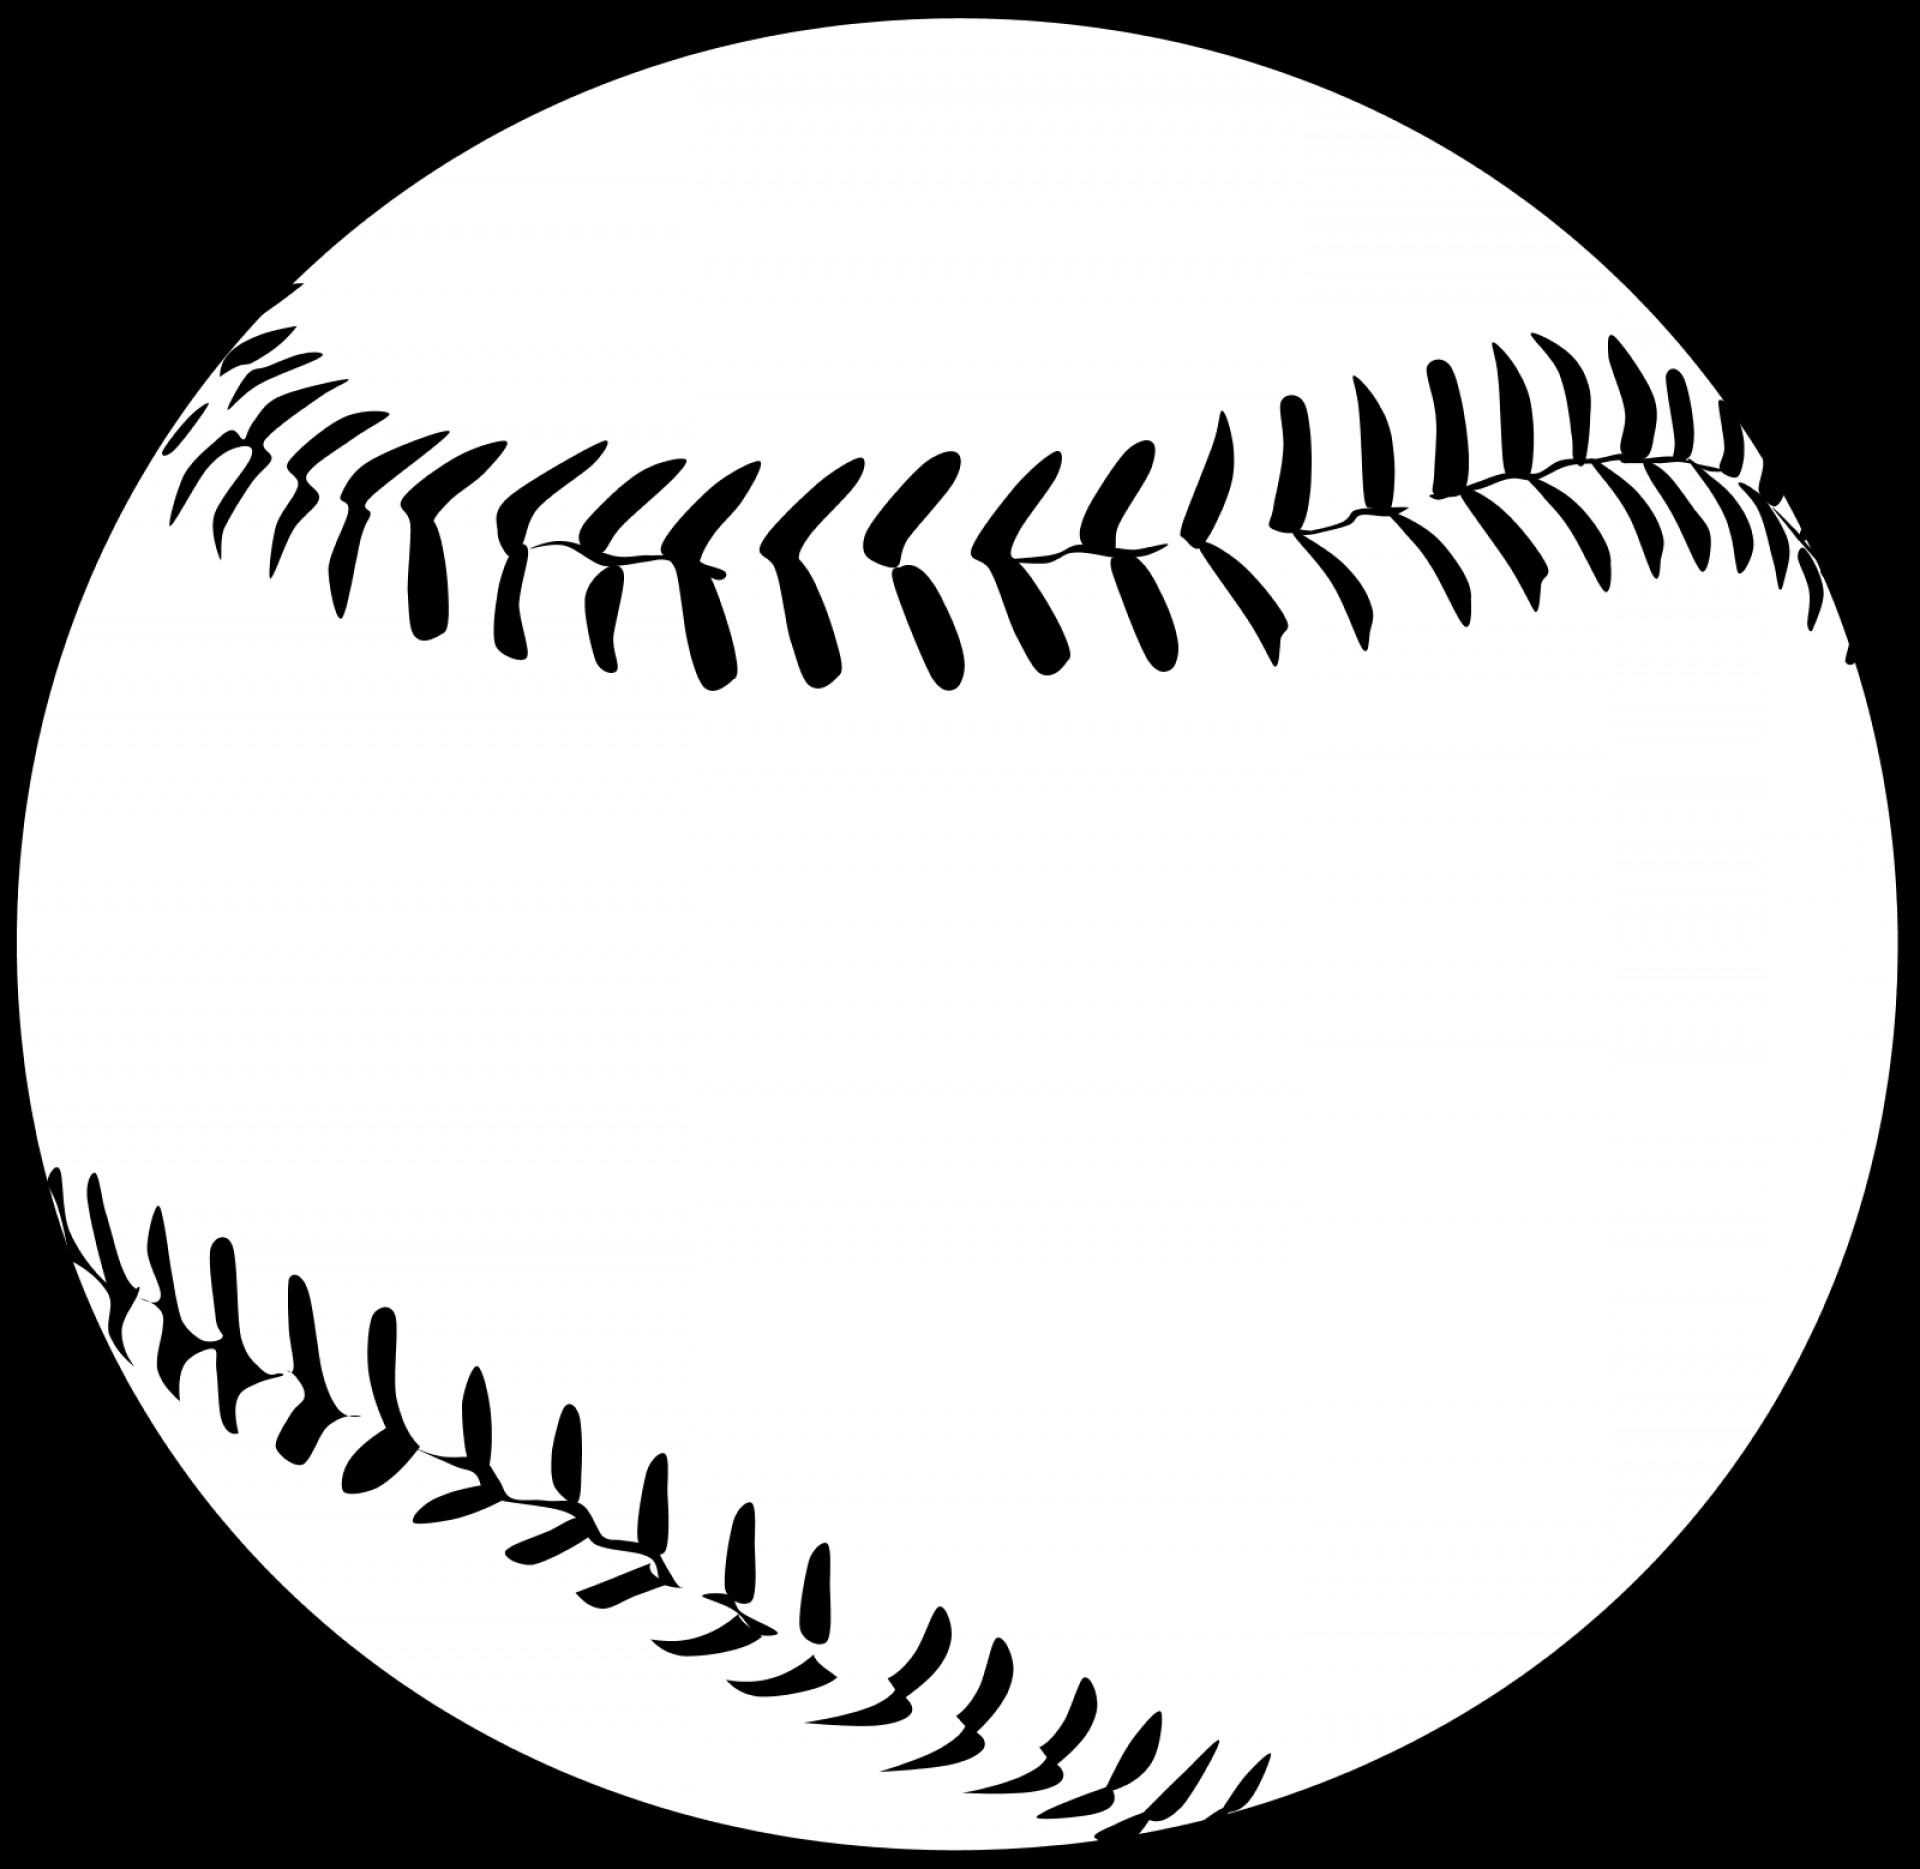 Baseball laces clipart black free download Baseball Clipart Free Black And White | GeekChicPro free download